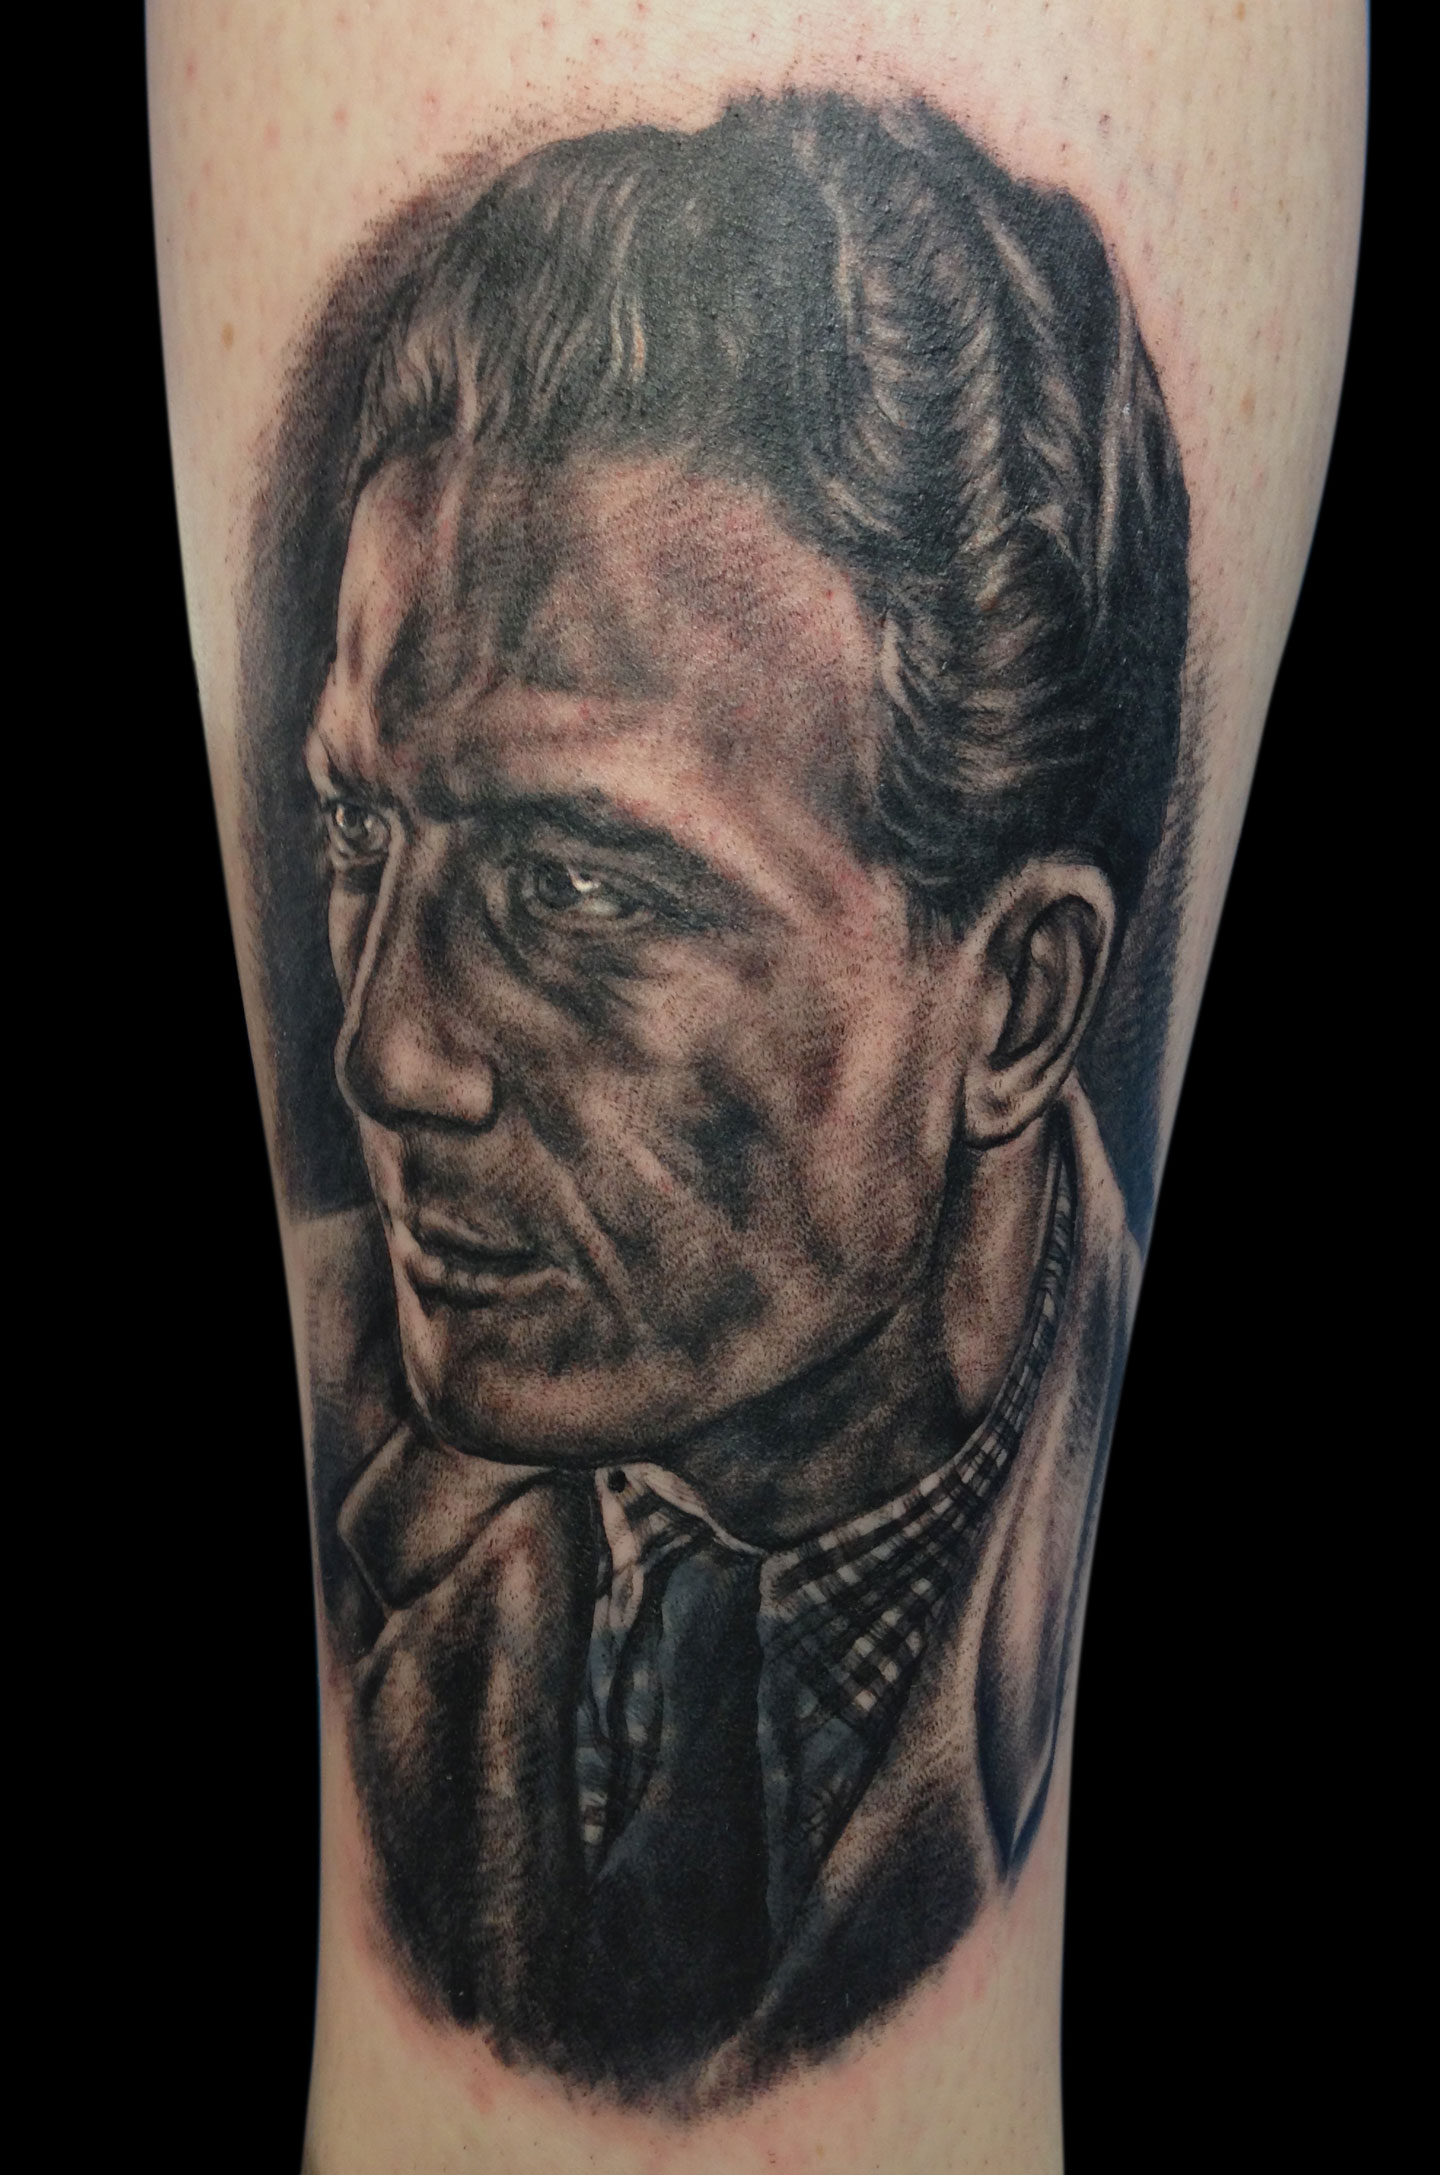 Black and Grey 'Grandpa the Artist and Sailor' Memorial Portrait Tattoo, (fresh) tattoo was done at 'Ink for the Oceans' day at Für Immer Tattoo Berlin,  all of the money for the tattoo was donated in support of the charity.